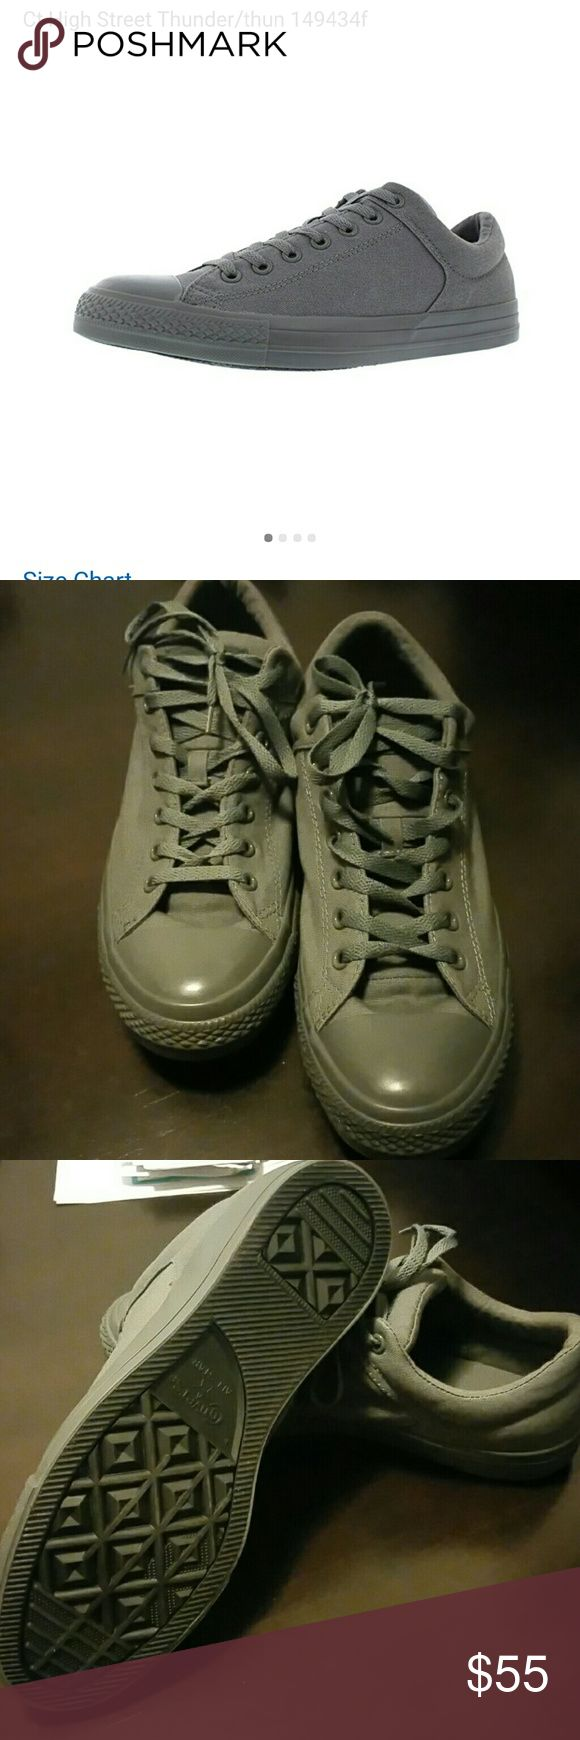 Converse all-star core ox NWOT. Converse all-star core ox. Gray on gray. Men's 11 woman's 13 Converse Shoes Athletic Shoes